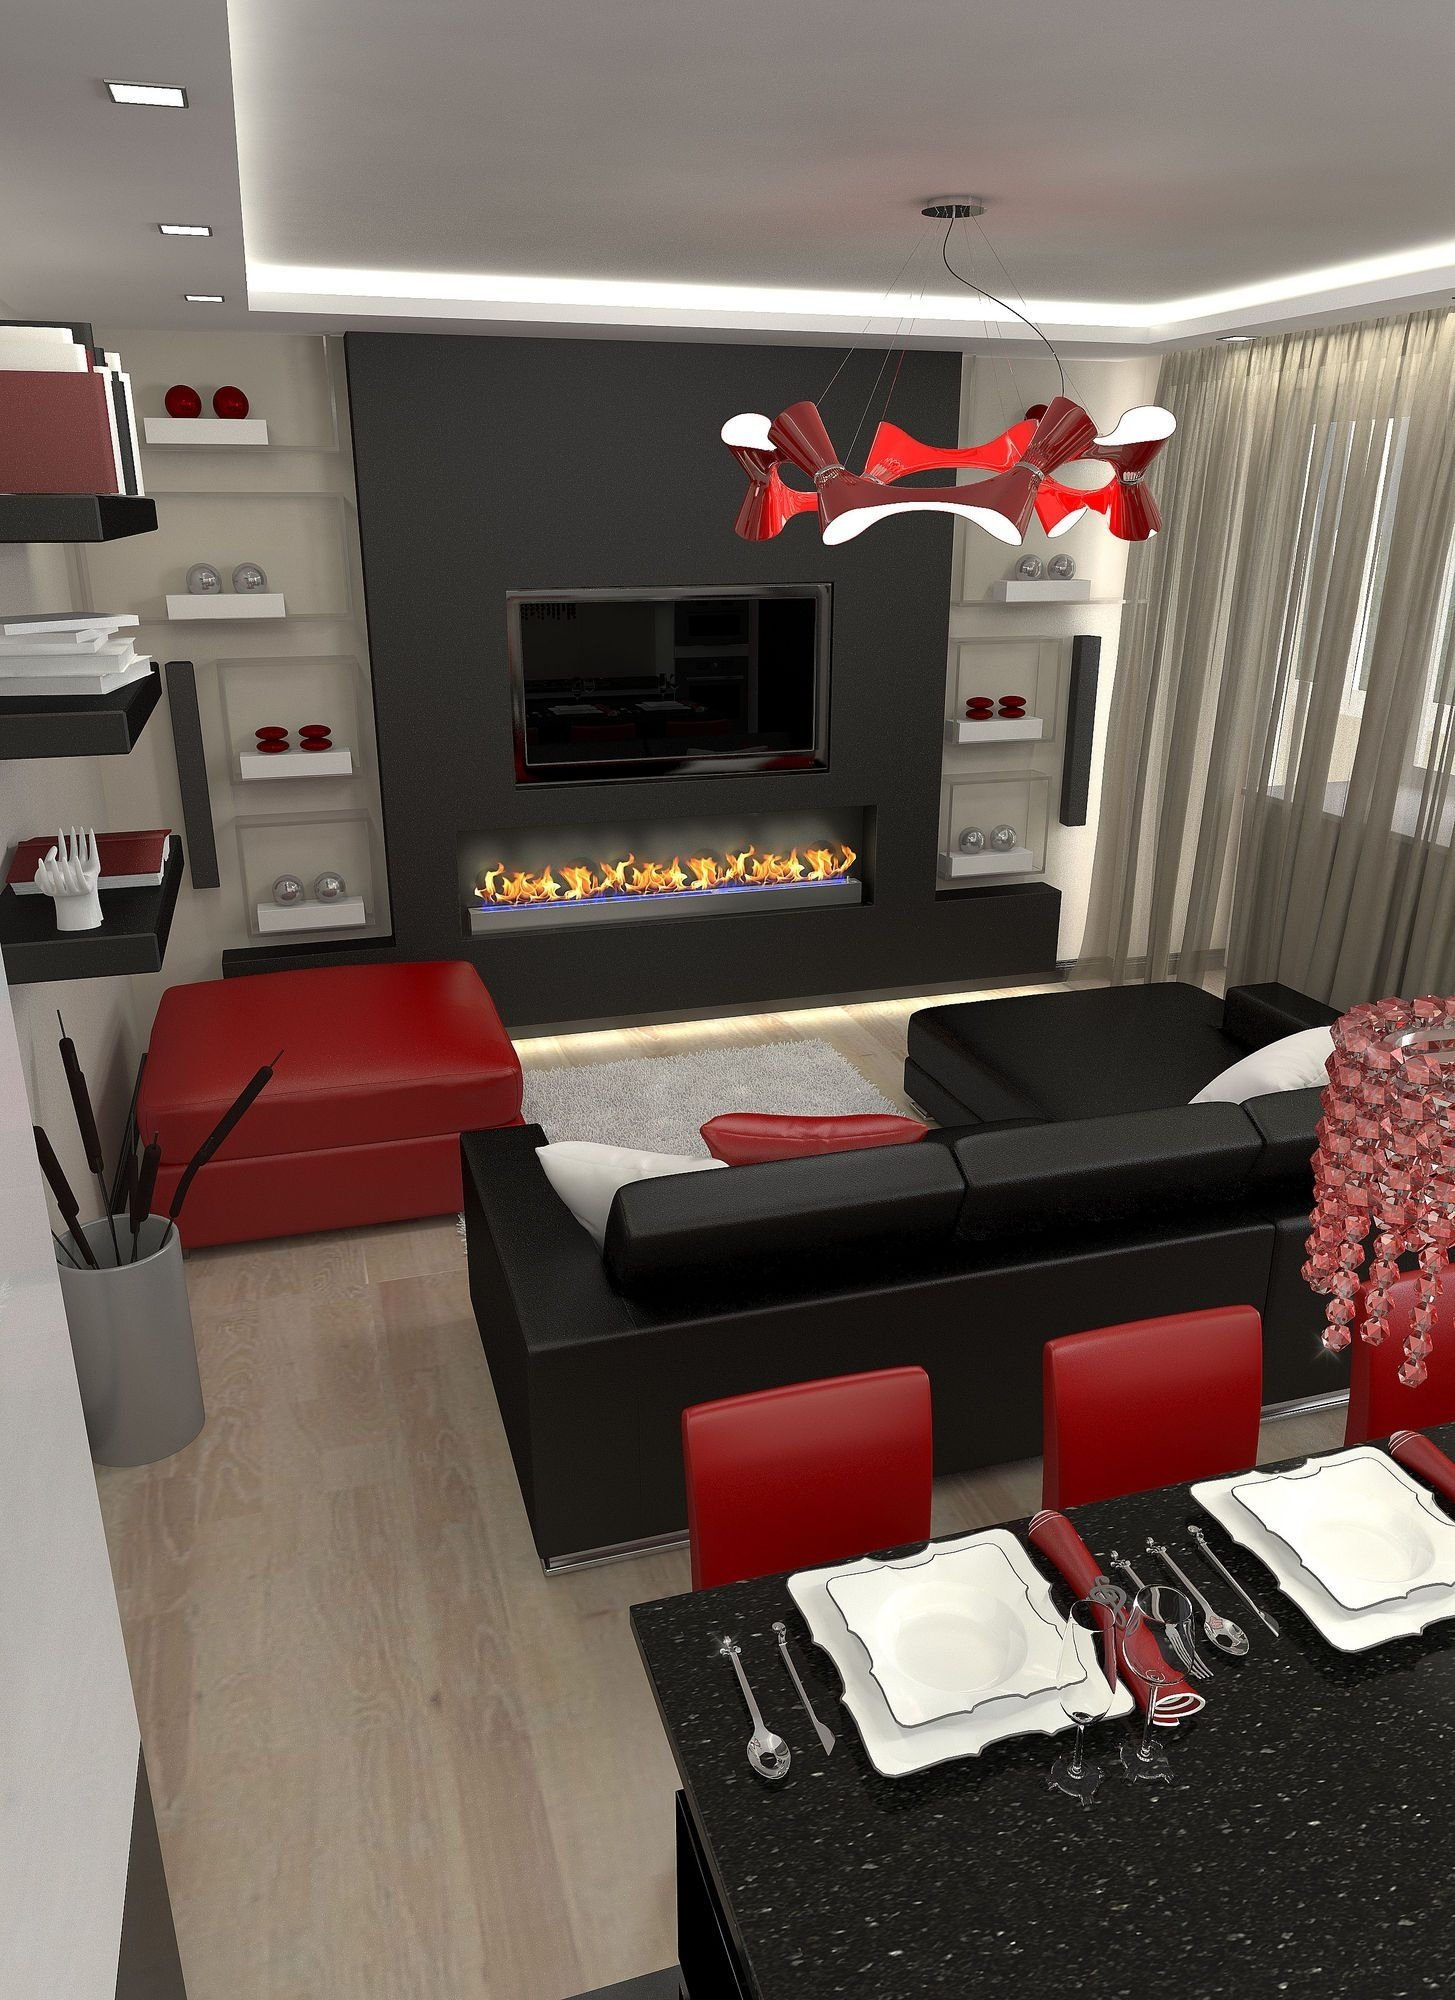 10 Beautiful Red And Black Living Room Ideas incridible elegant red white and black living room l ecfcecared 2020